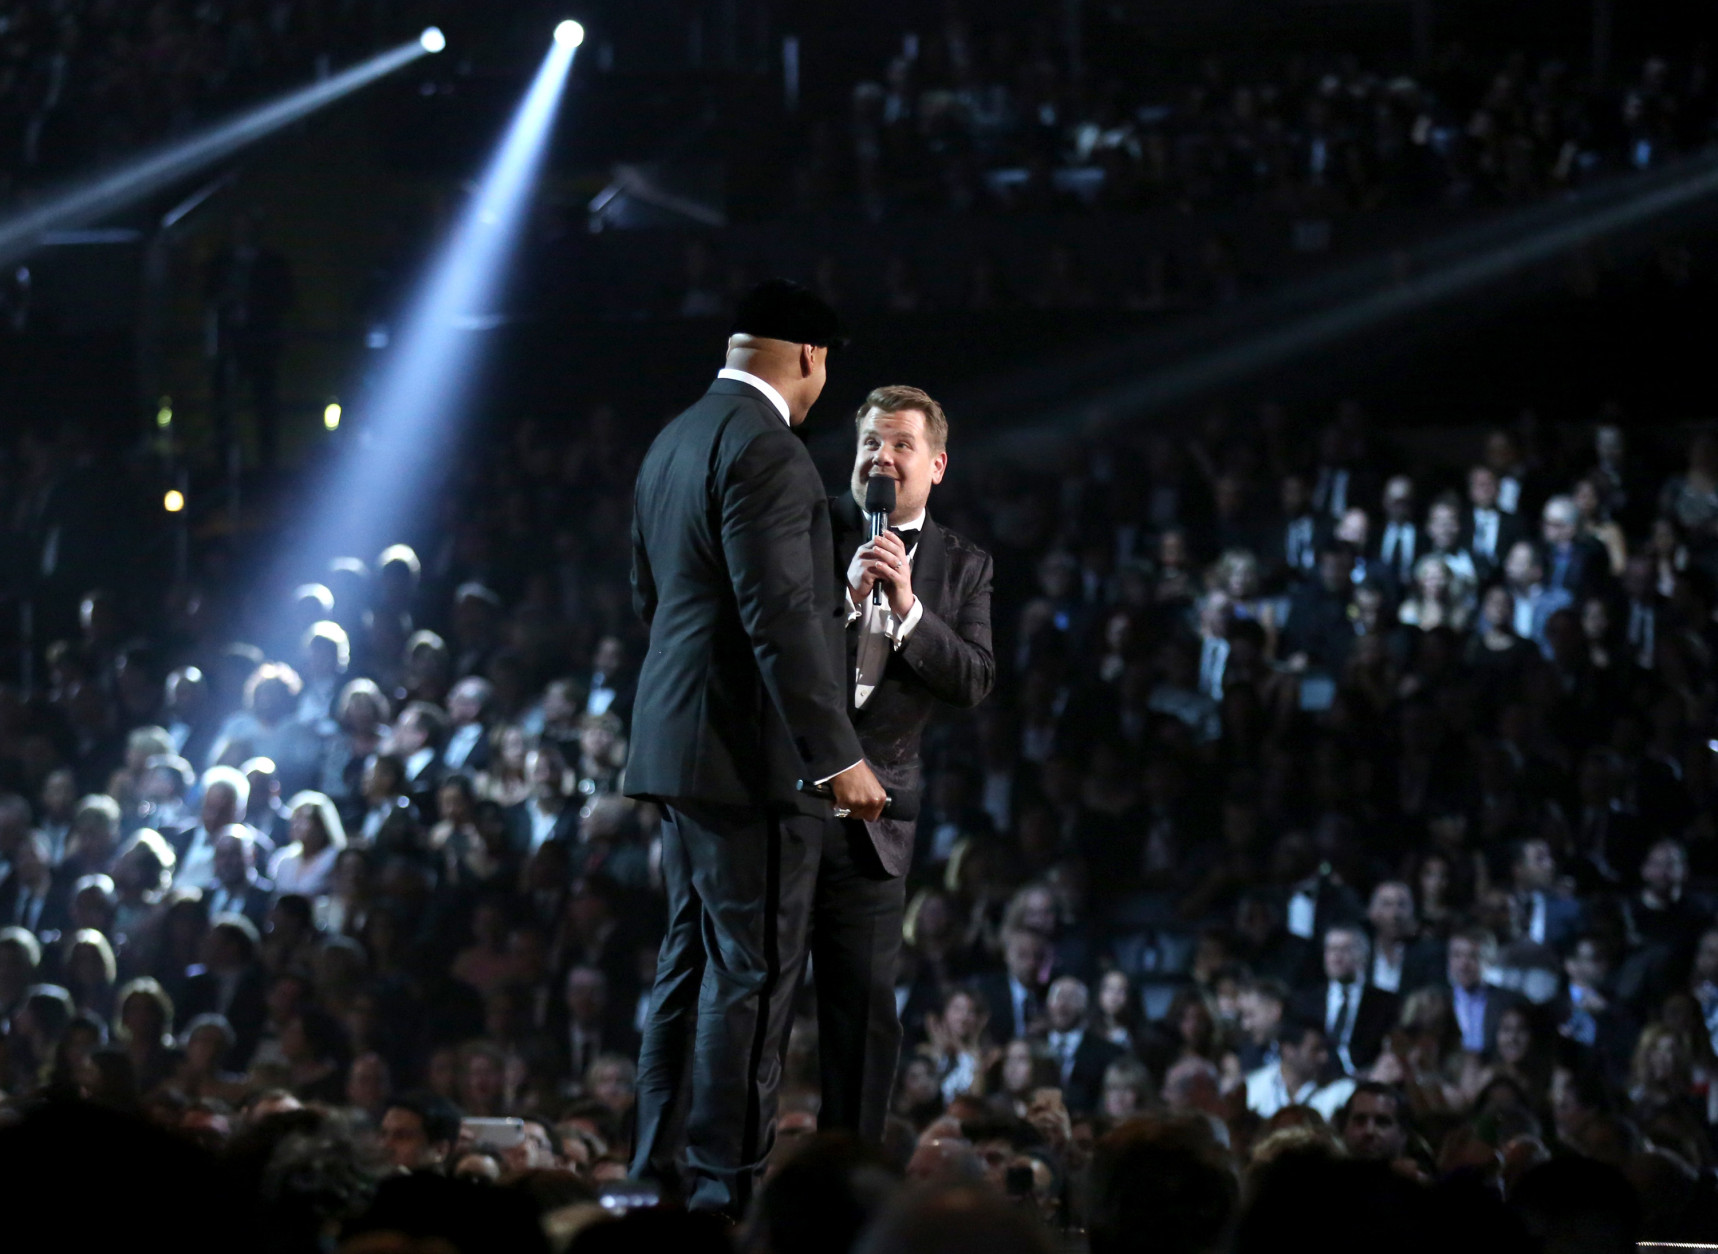 LL Cool J, left, and James Corden introduce a tribute to Lionel Richie at the 58th annual Grammy Awards on Monday, Feb. 15, 2016, in Los Angeles. (Photo by Matt Sayles/Invision/AP)